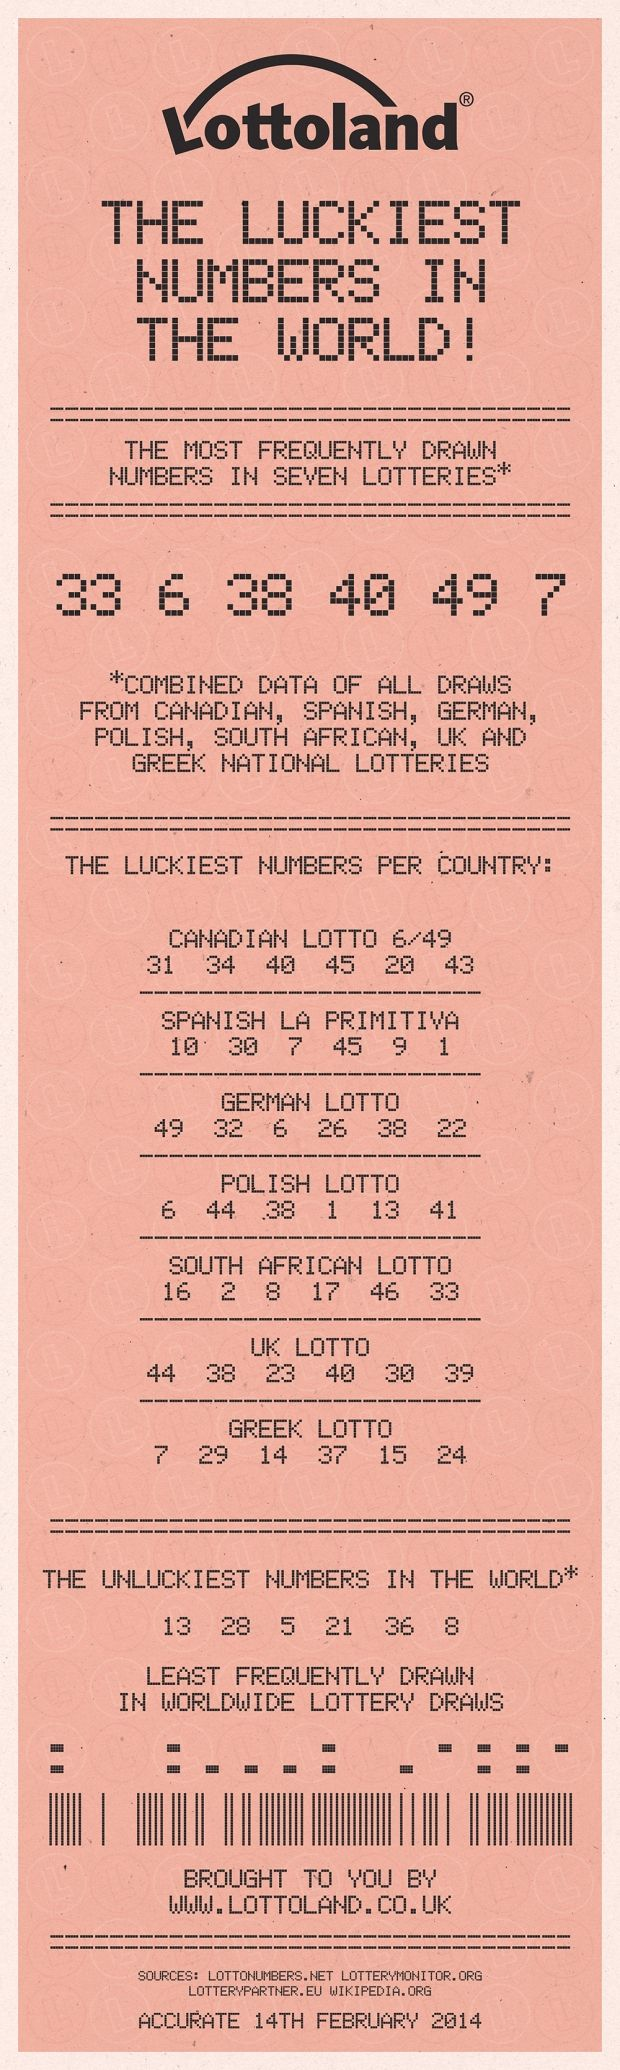 44 Best Varios Images On Pinterest Computers Tools And Hp Briggs Stratton Carburetor Diagram Tattoo Pictures This Infographic Is All About The Luckiest Lottery Numbers In World Result Of